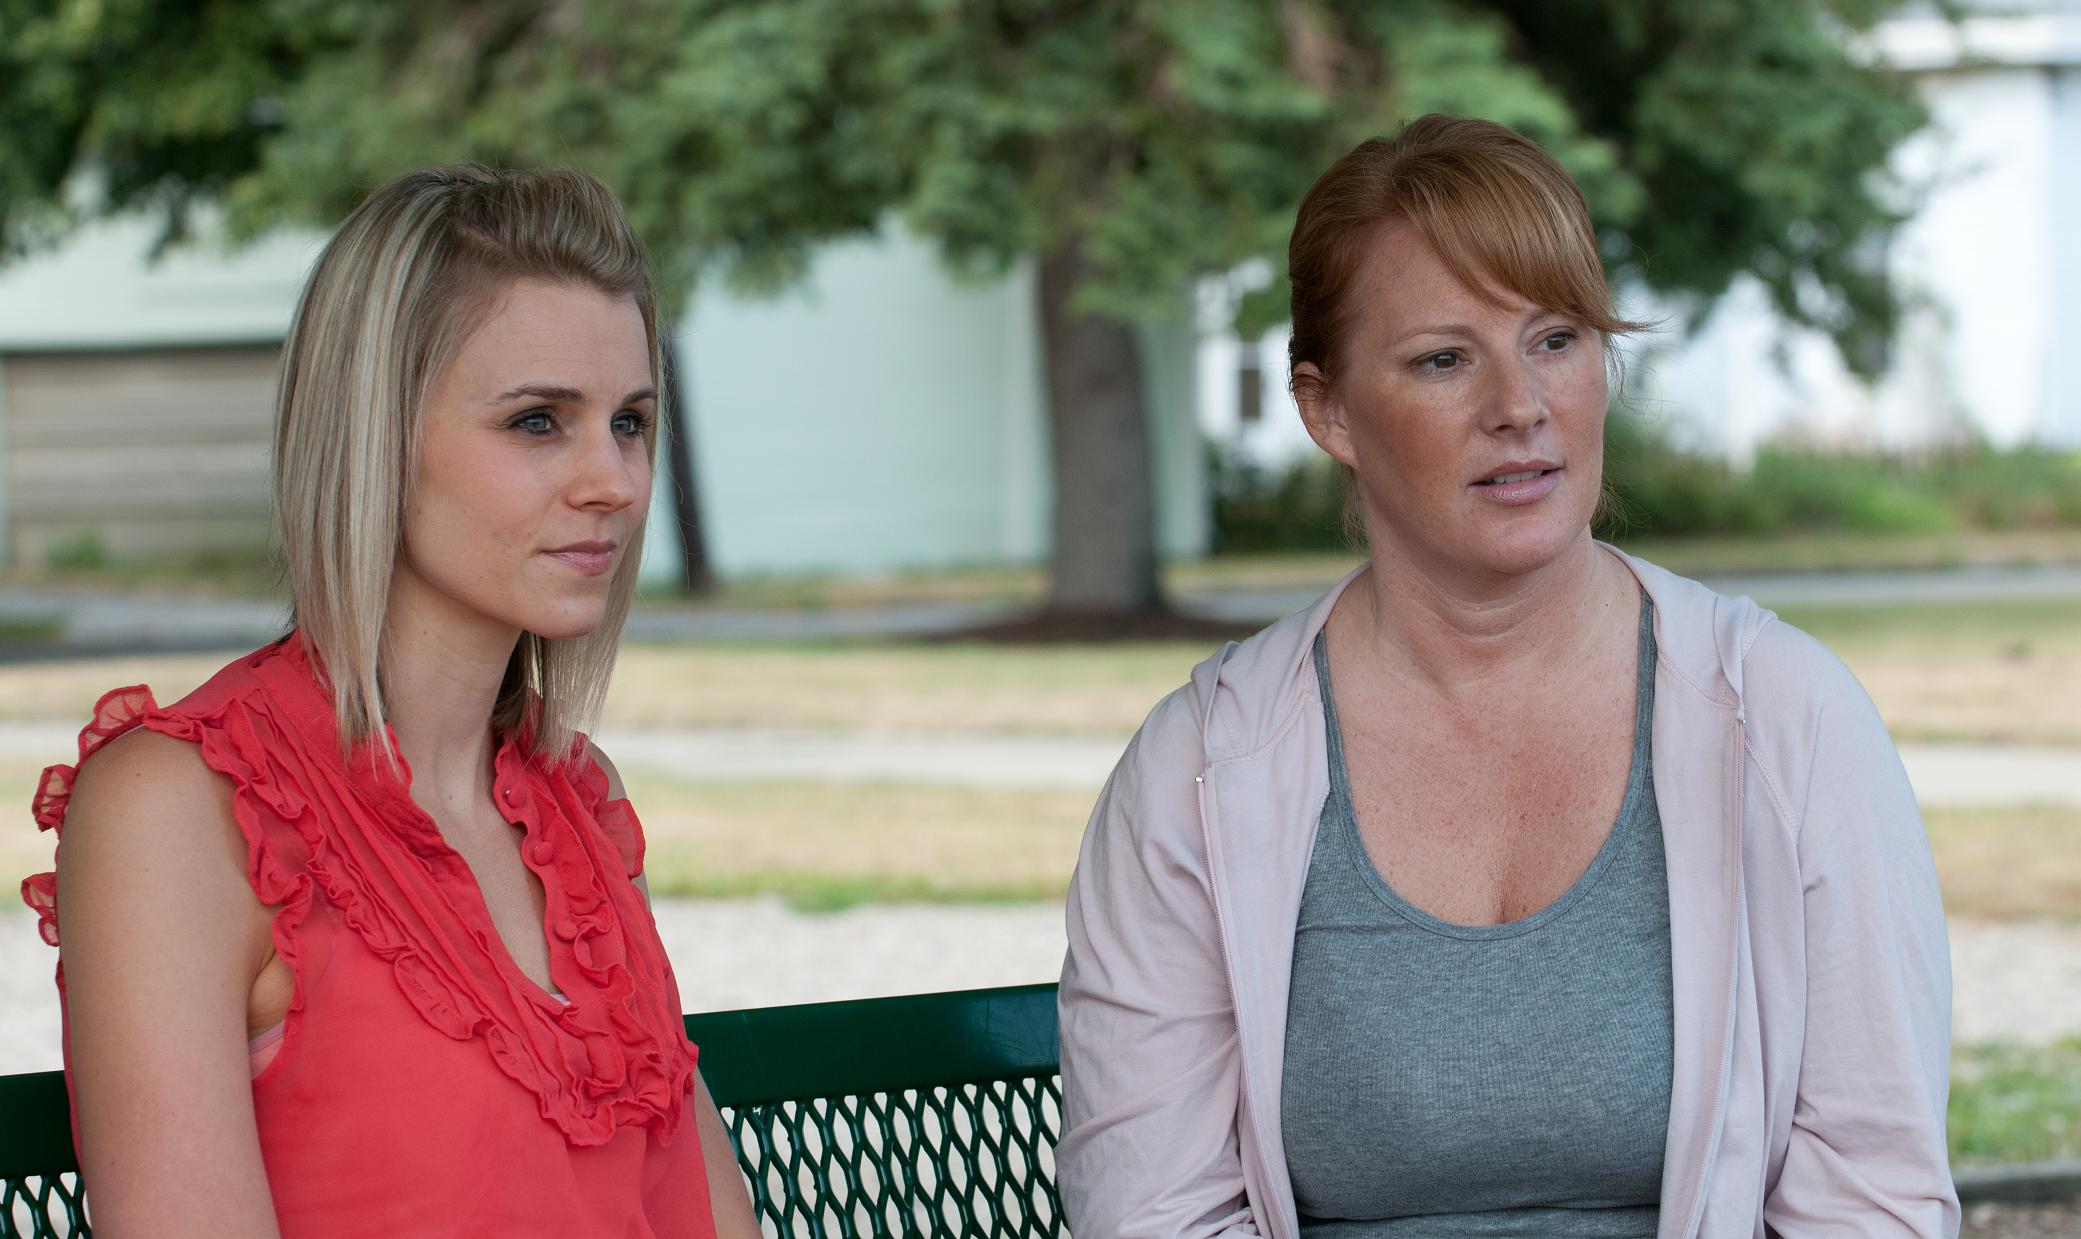 From left, Liz Collar (April) and Melissa Chapman (Carol) during a scene filmed in Carmel's West Park. (Submitted photo)